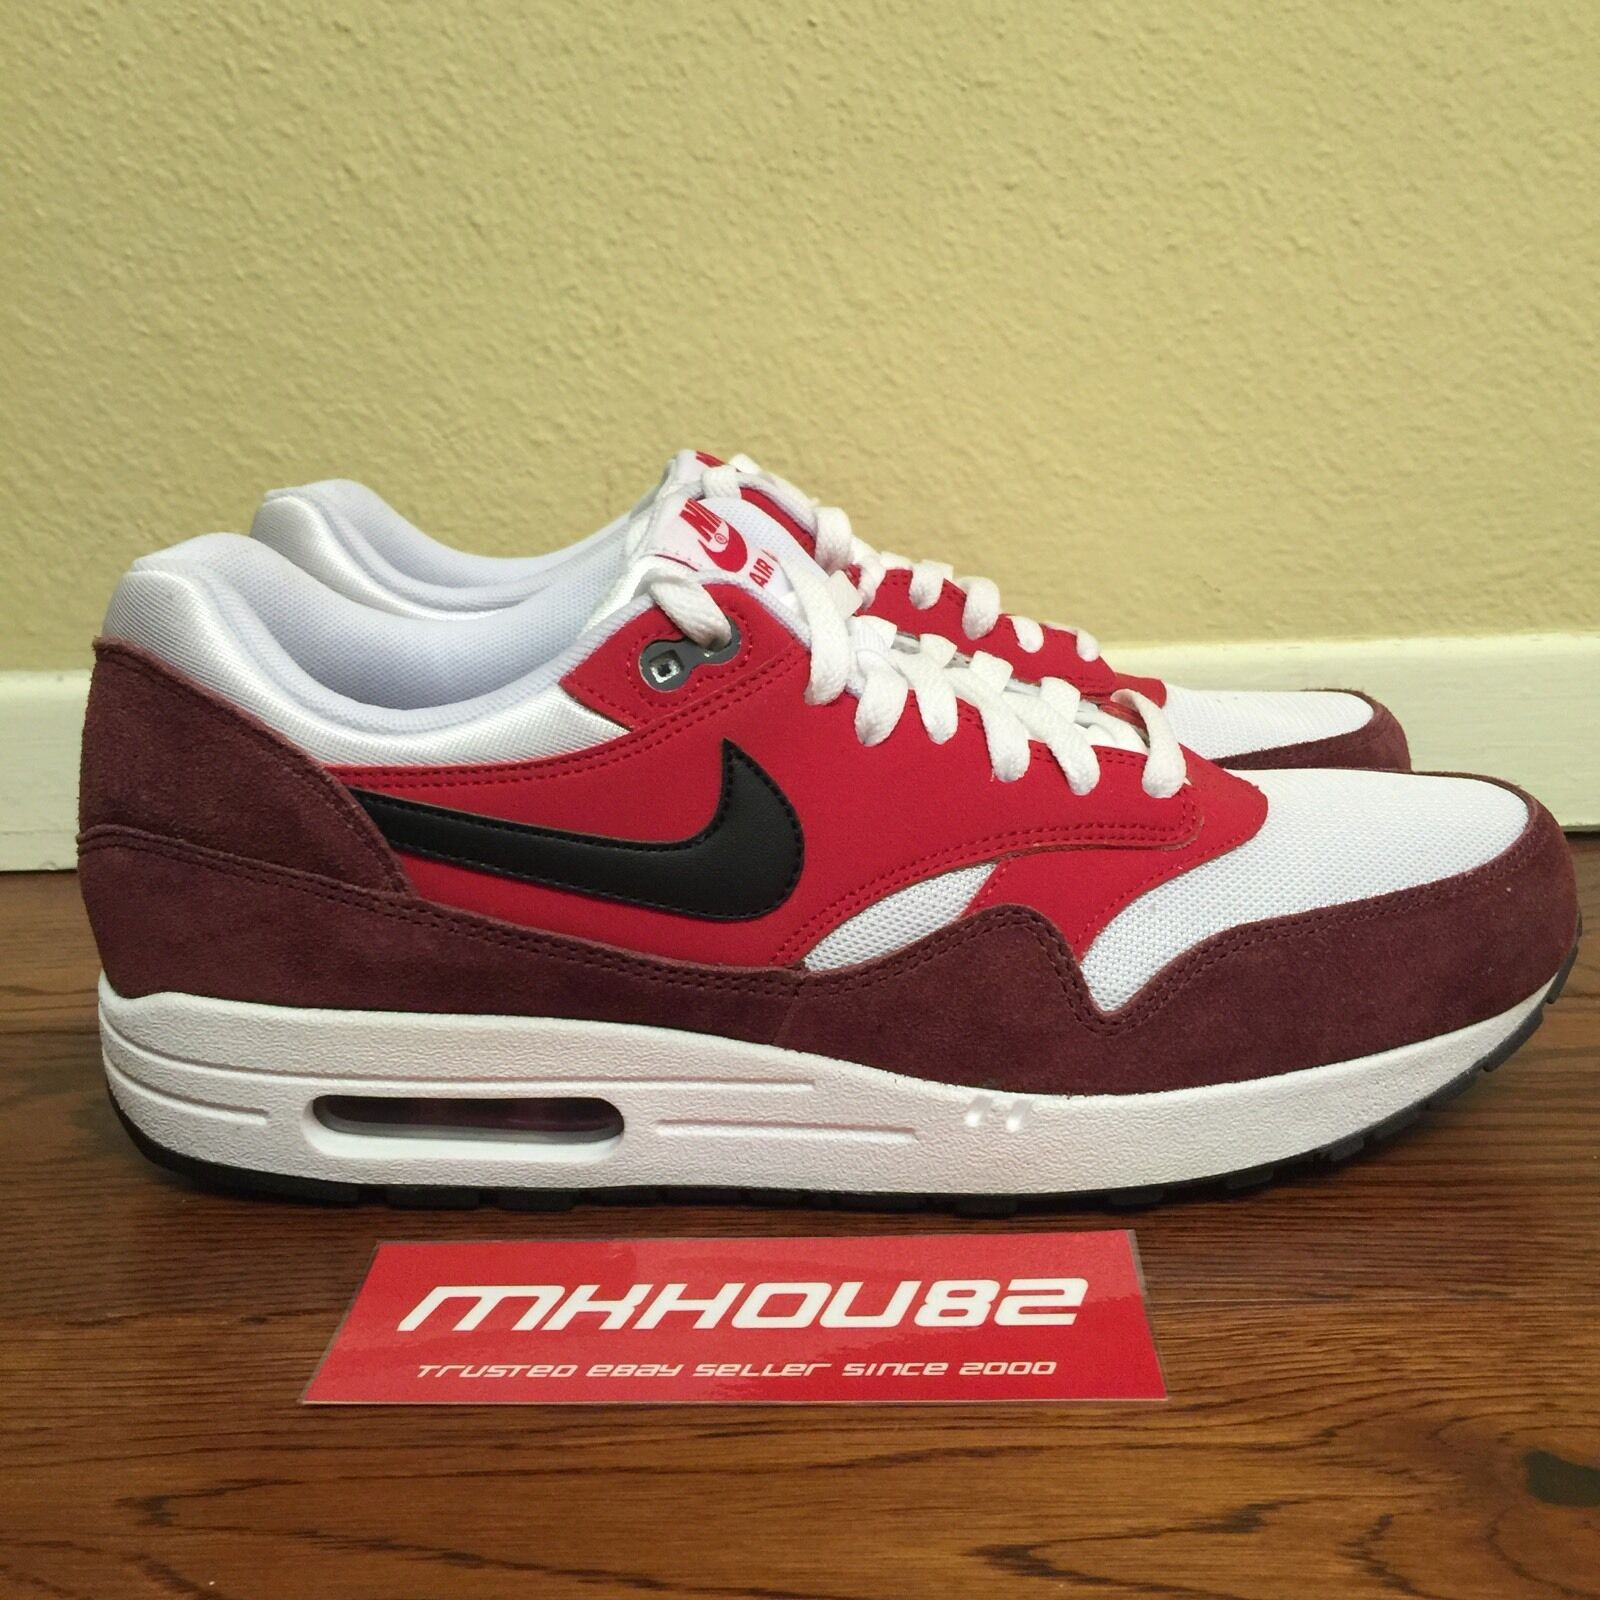 Nike Blanco Air Max 1 Essential AM1 537383116 Blanco Nike Negro Rojo Universitario Zapatos 8b3b61